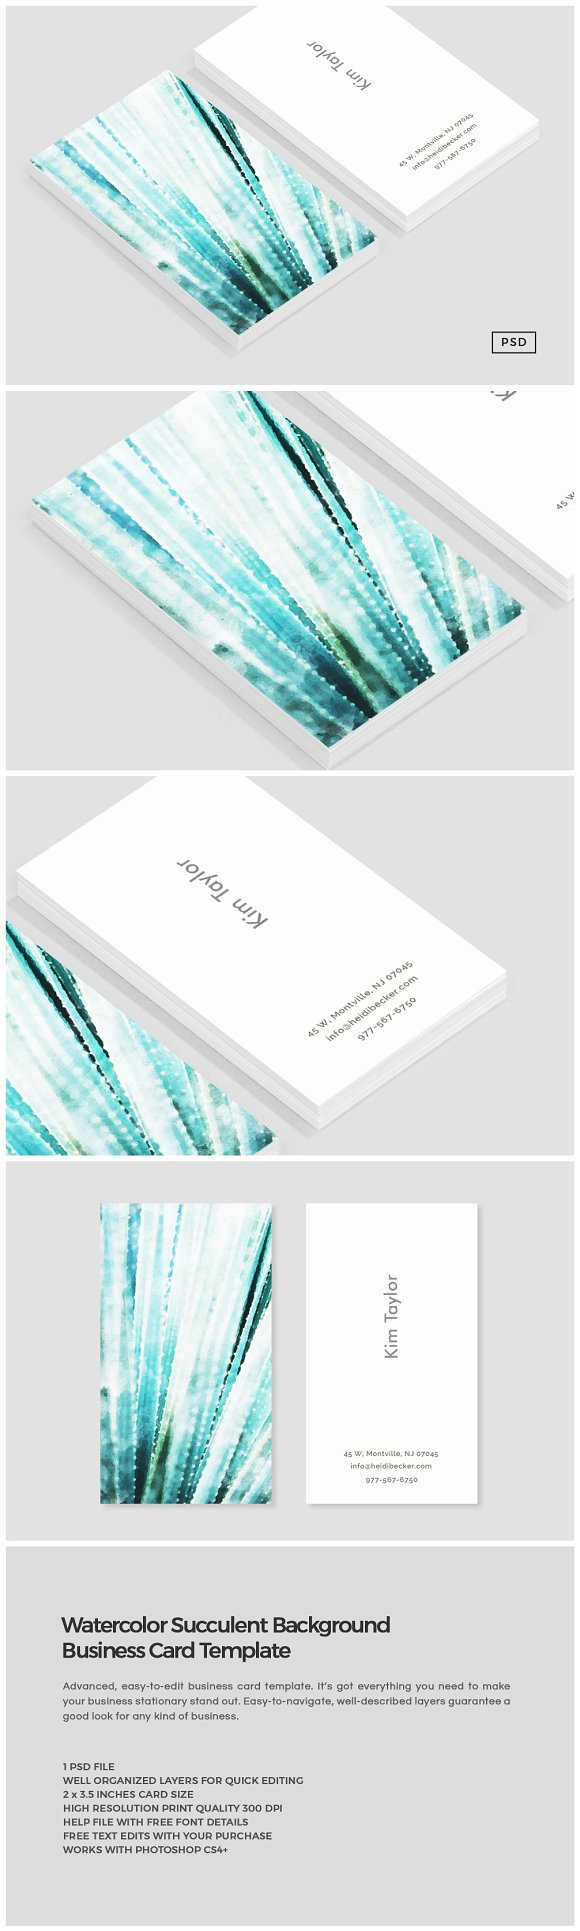 Watercolor succulent business card business card templates watercolor succulent business card business card templates creative market reheart Image collections